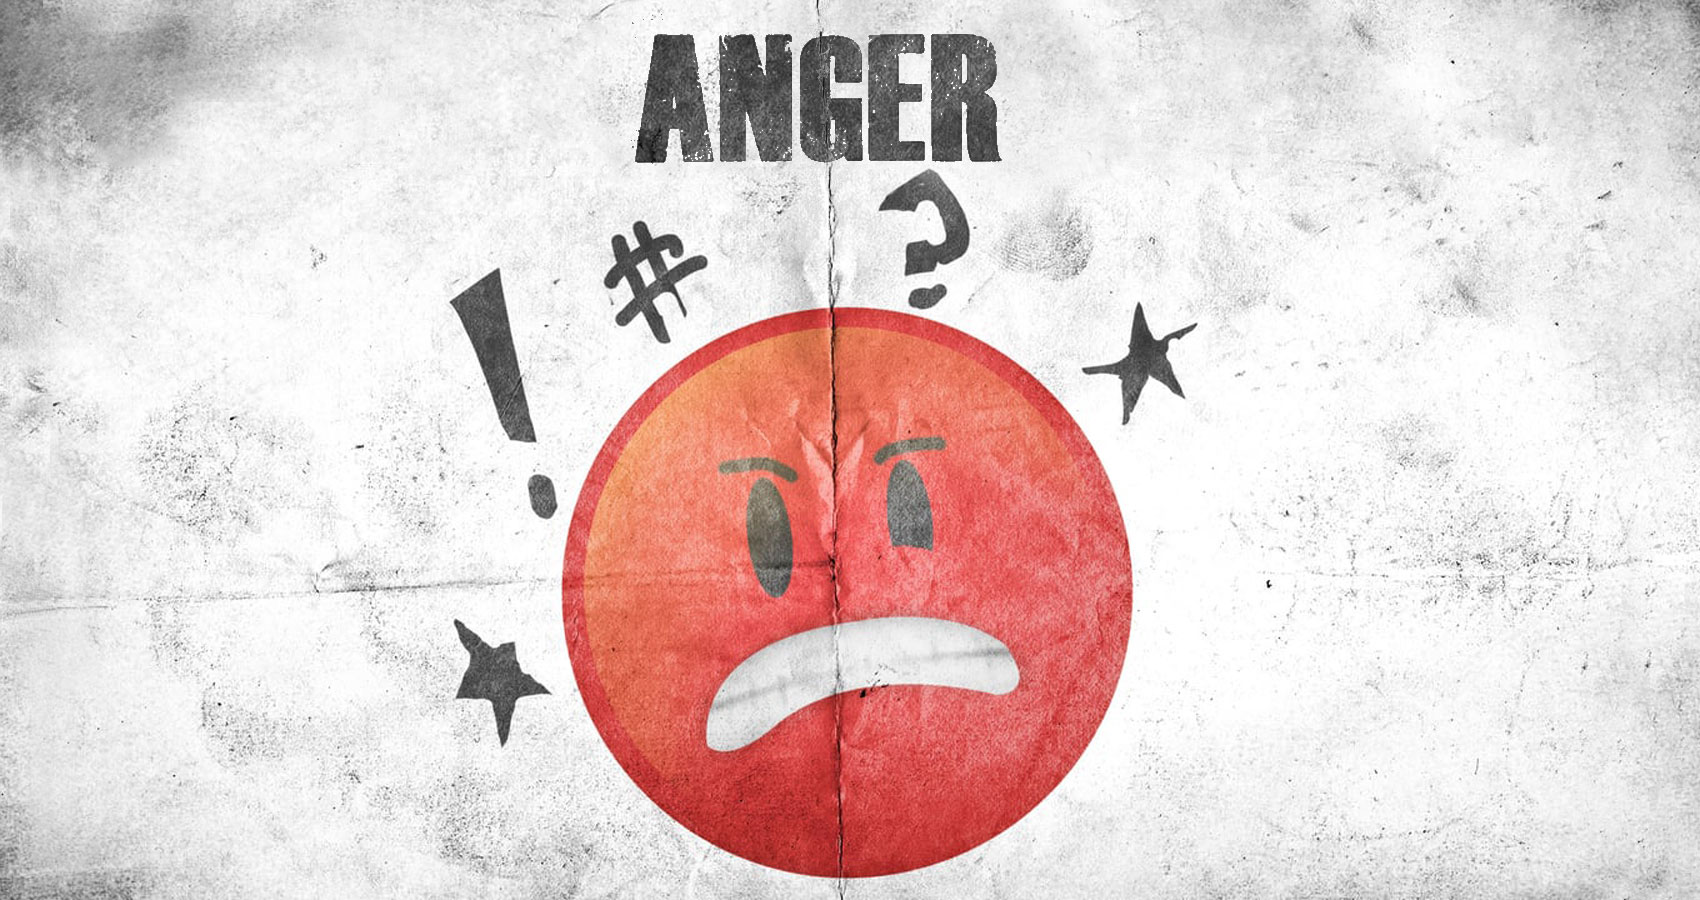 Anger written by Edward Ponceat Spillwords.com